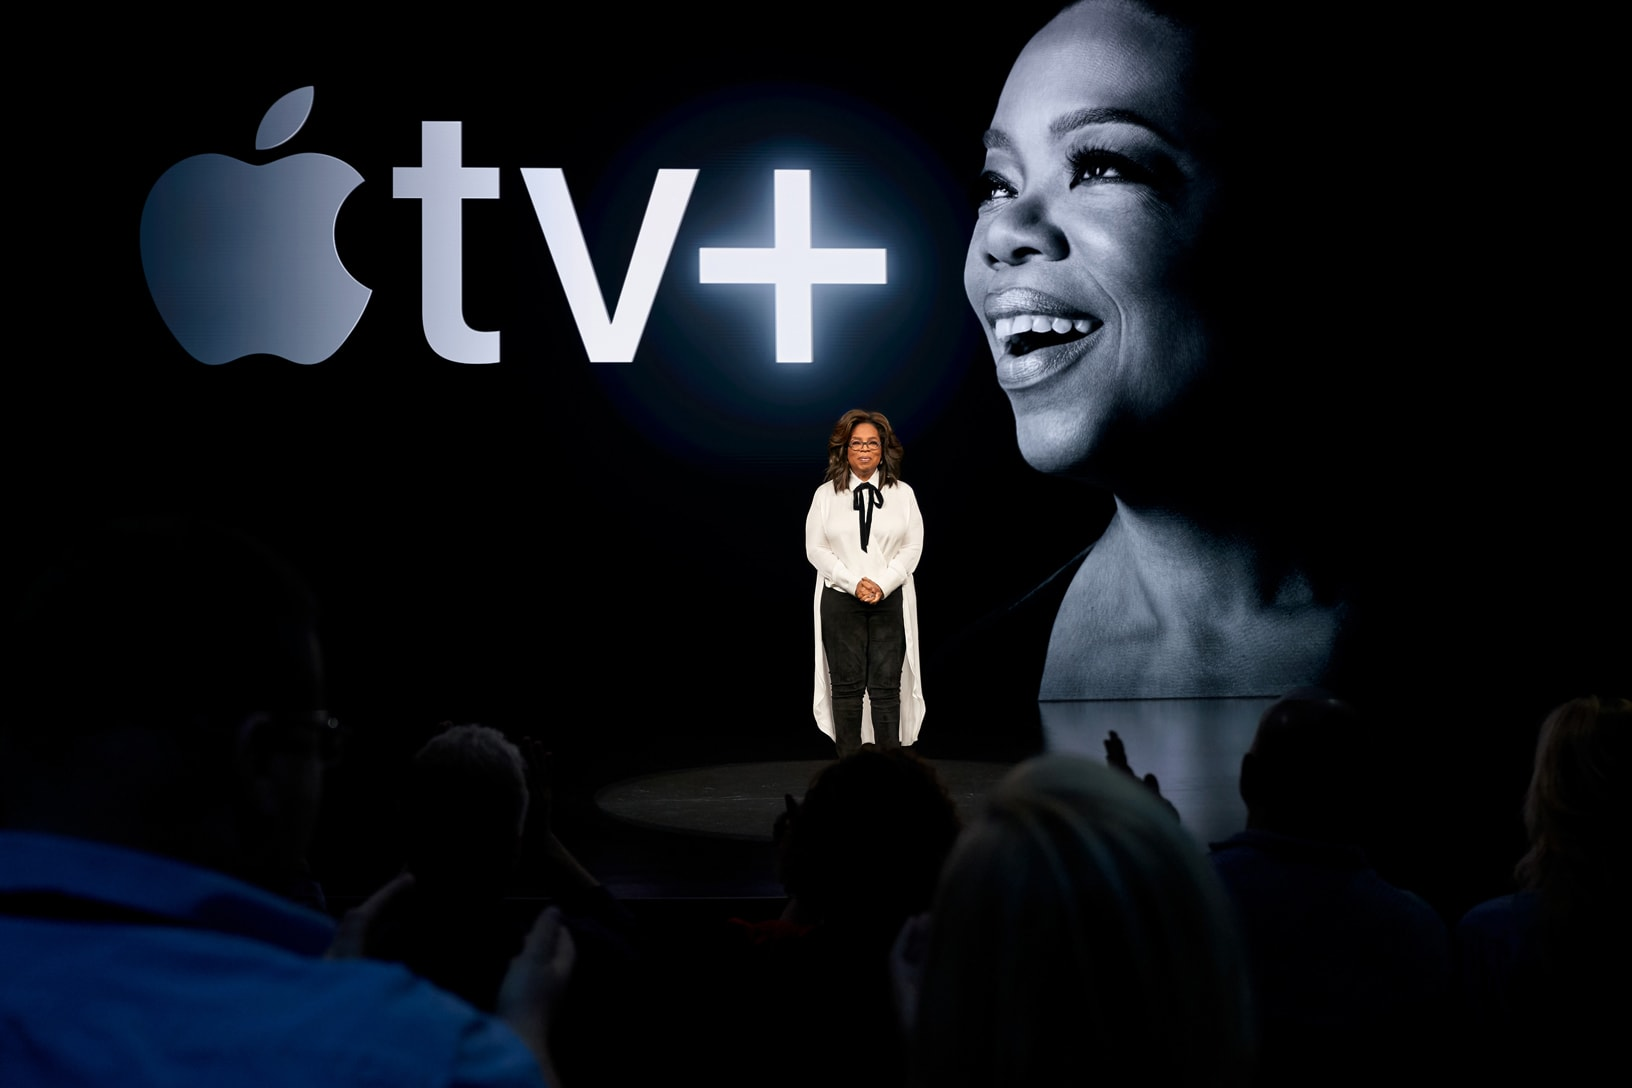 Oprah Winfrey says Apple TV+ can have a genuine impact on humanity. Shows like Shantaram could help.